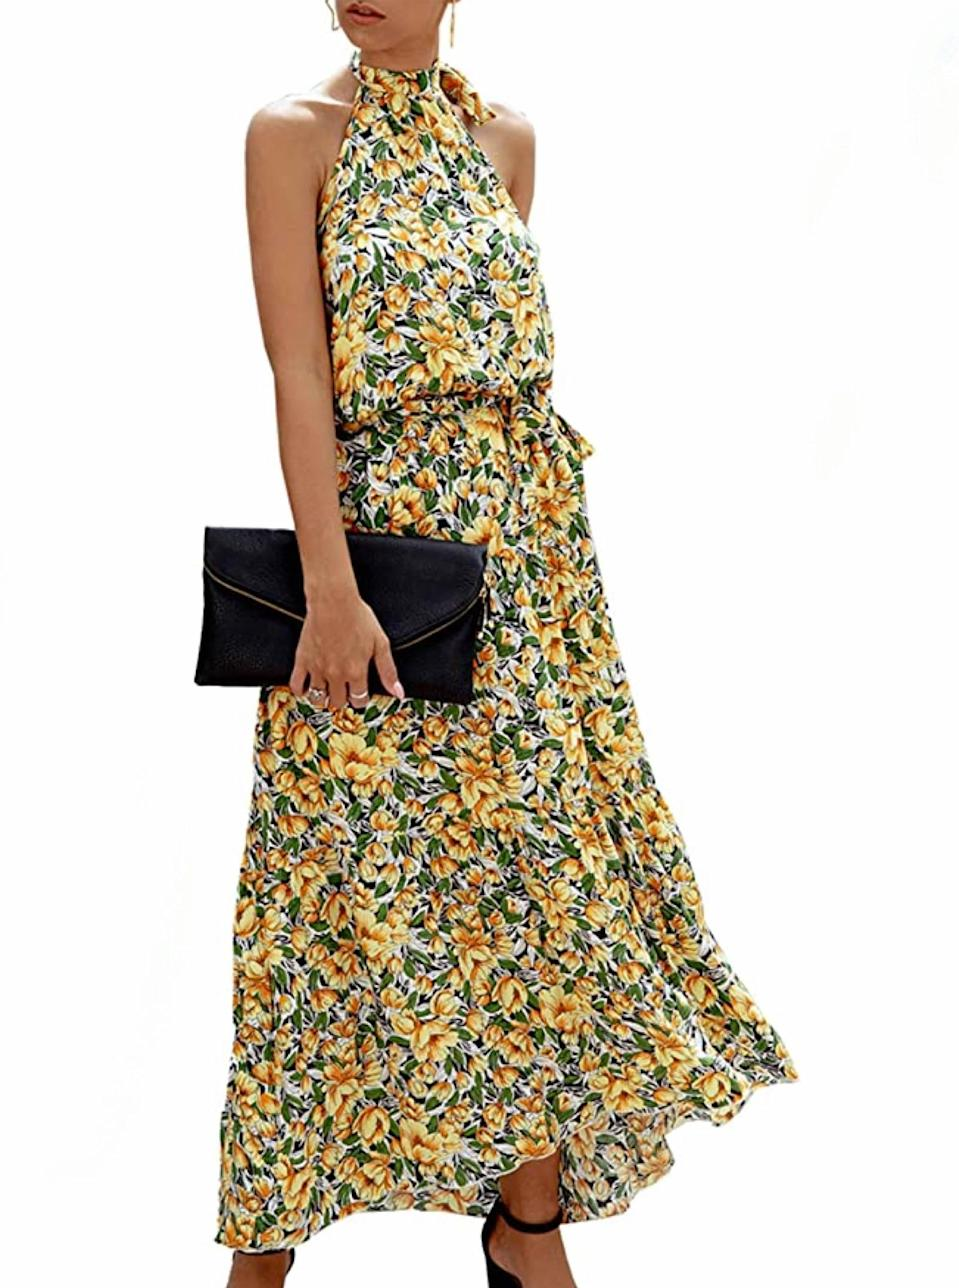 """Go for a dose of joyful vitality with this energetic high-neck look that will offer a mid-spring mood boost. $31, Amazon. <a href=""""https://www.amazon.com/PRETTYGARDEN-Womens-Sleeveless-Backless-Sundress/dp/B0824QBN88/"""" rel=""""nofollow noopener"""" target=""""_blank"""" data-ylk=""""slk:Get it now!"""" class=""""link rapid-noclick-resp"""">Get it now!</a>"""